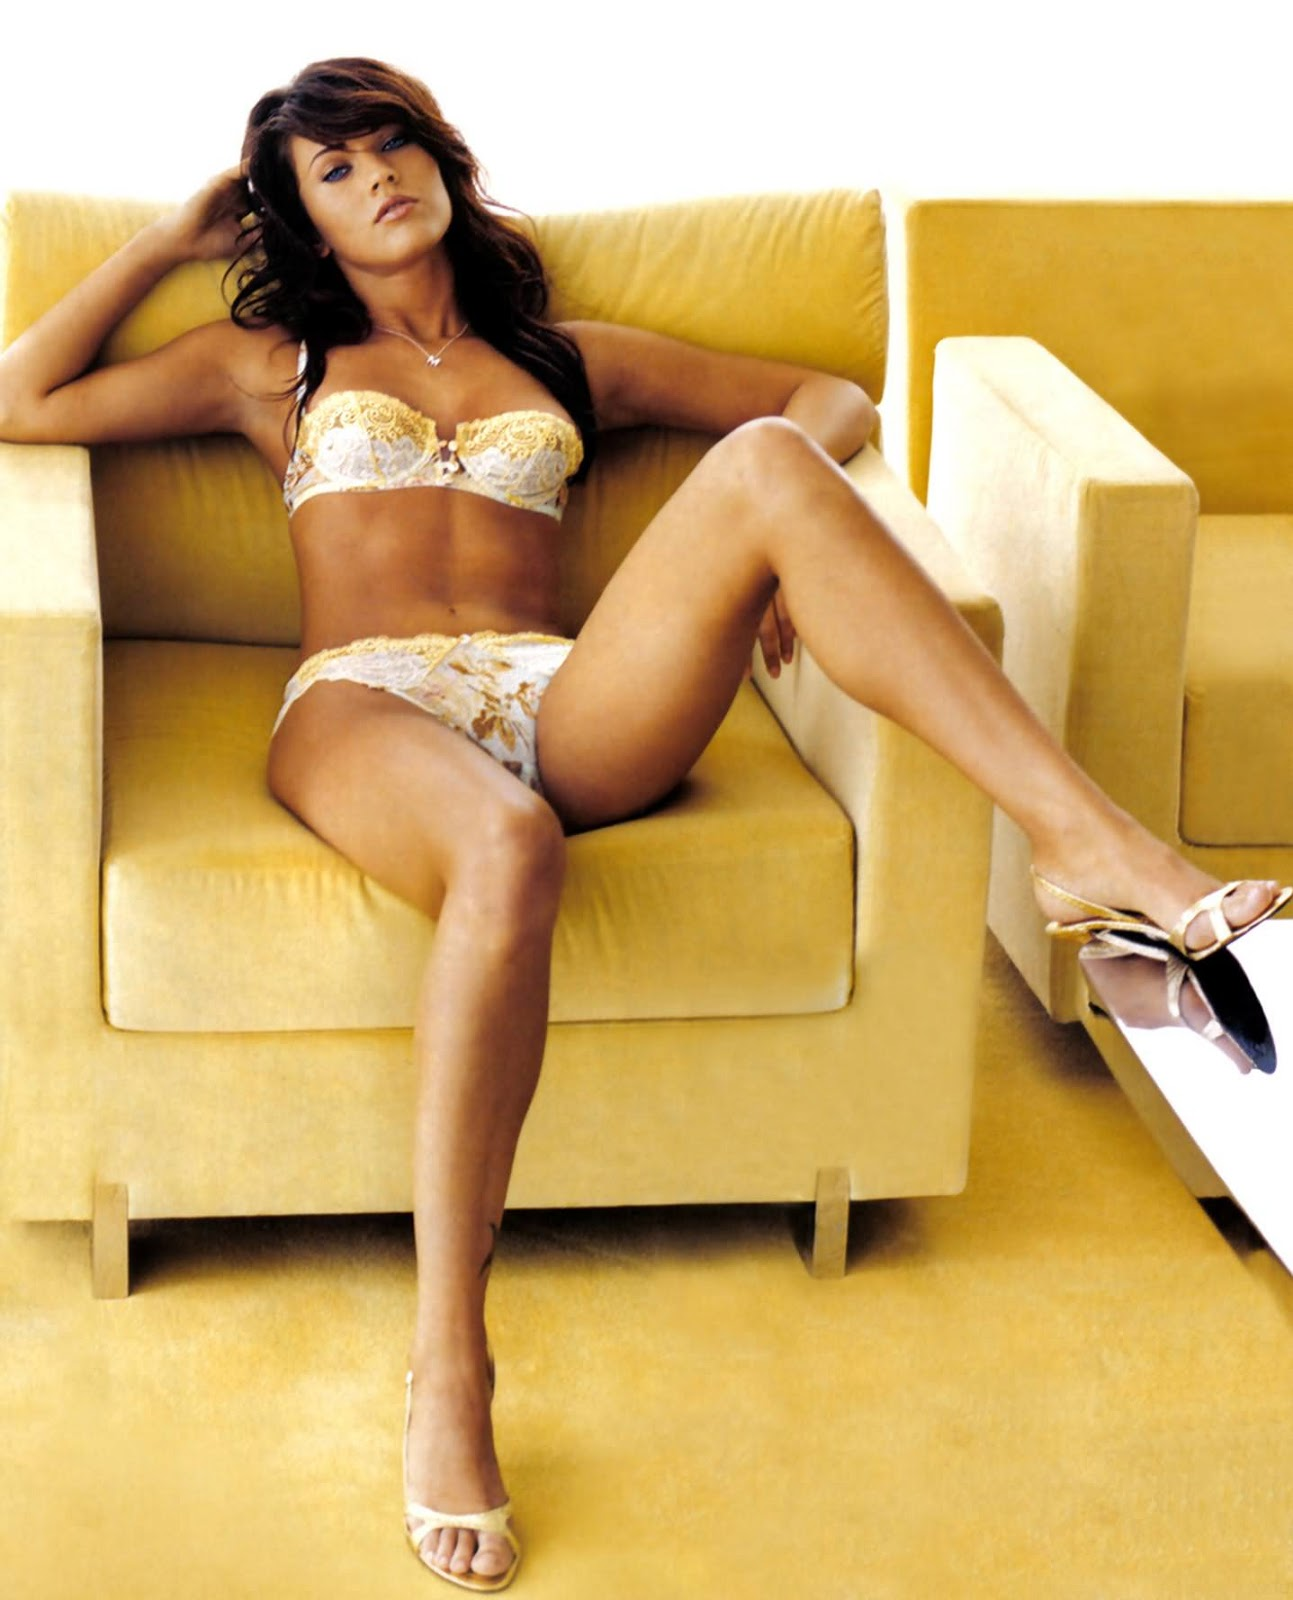 Megan Fox Beautiful New Hot Images 2013 | Its All About ...